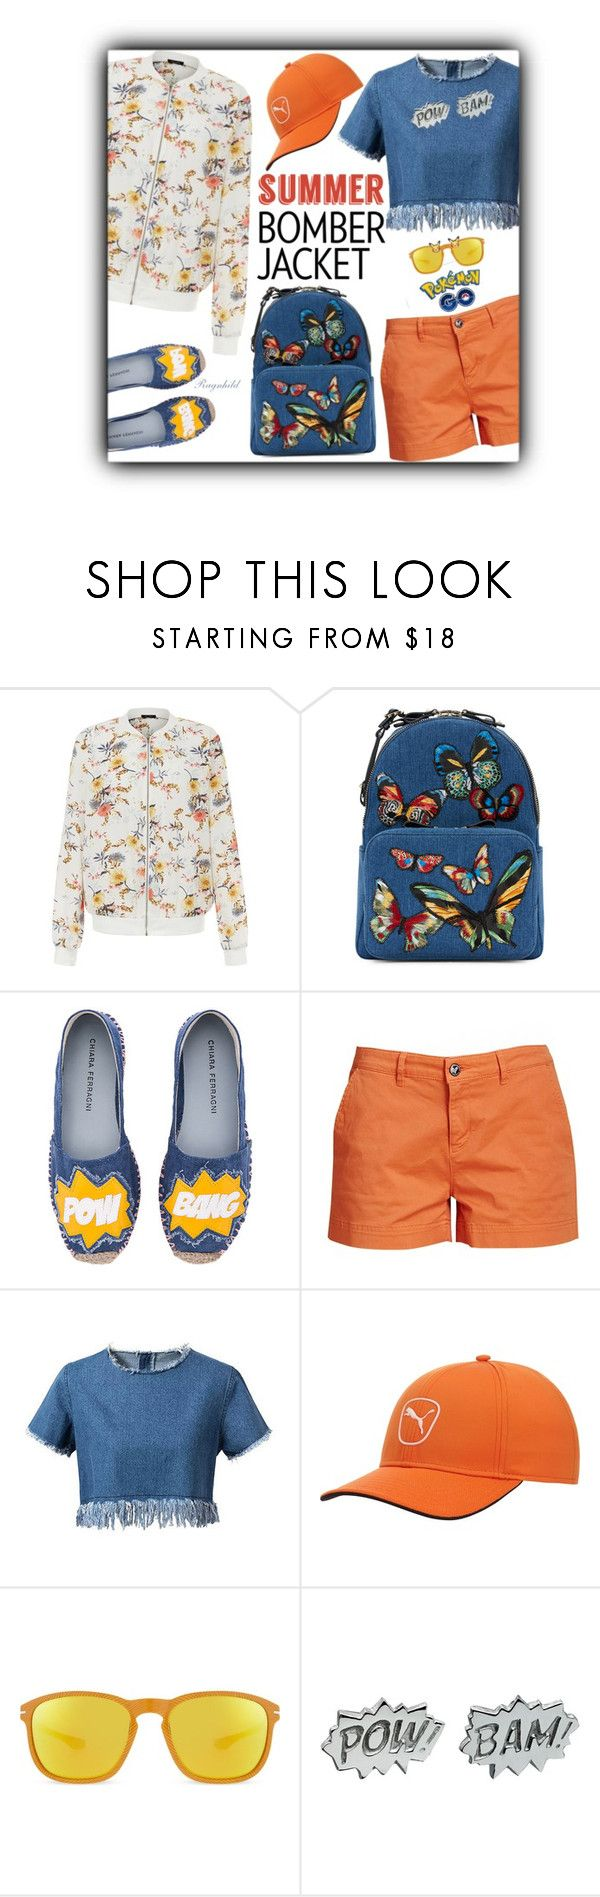 """""""Summer Bomber Jacket"""" by ragnh-mjos ❤ liked on Polyvore featuring New Look, Valentino, Chiara Ferragni, Barbour, Chicnova Fashion, Puma, Oakley, Edge Only, outfit and bomberjackets"""